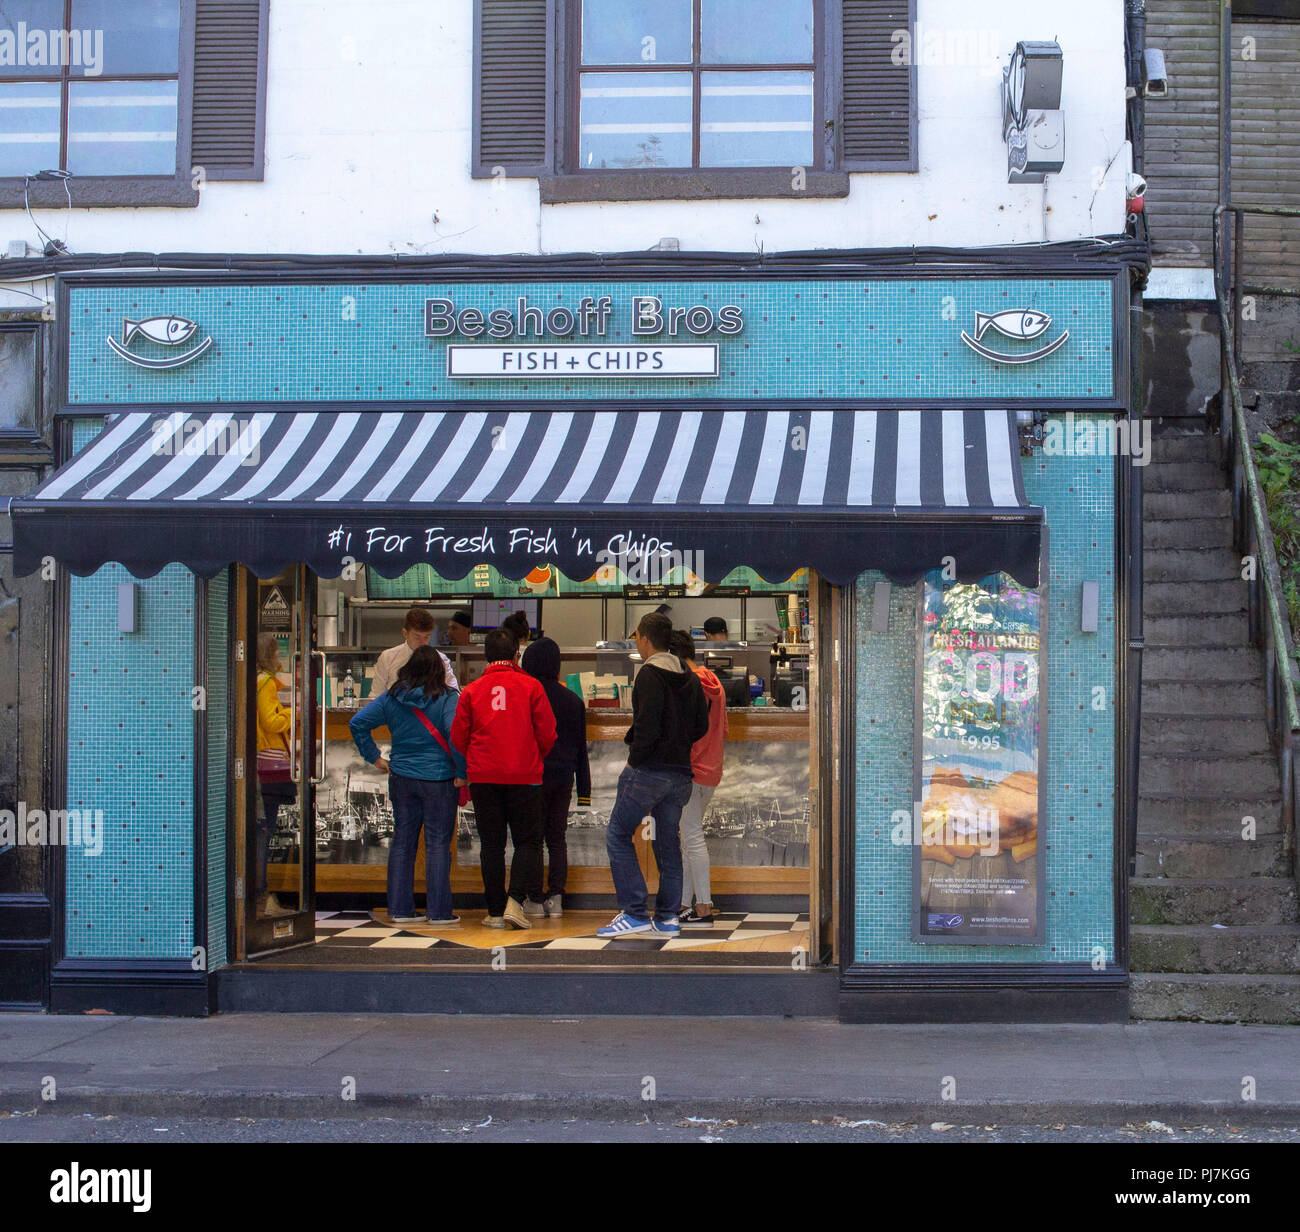 Beshoff's Bros.Fish and Chip shop in Howth,Co.Dublin. - Stock Image